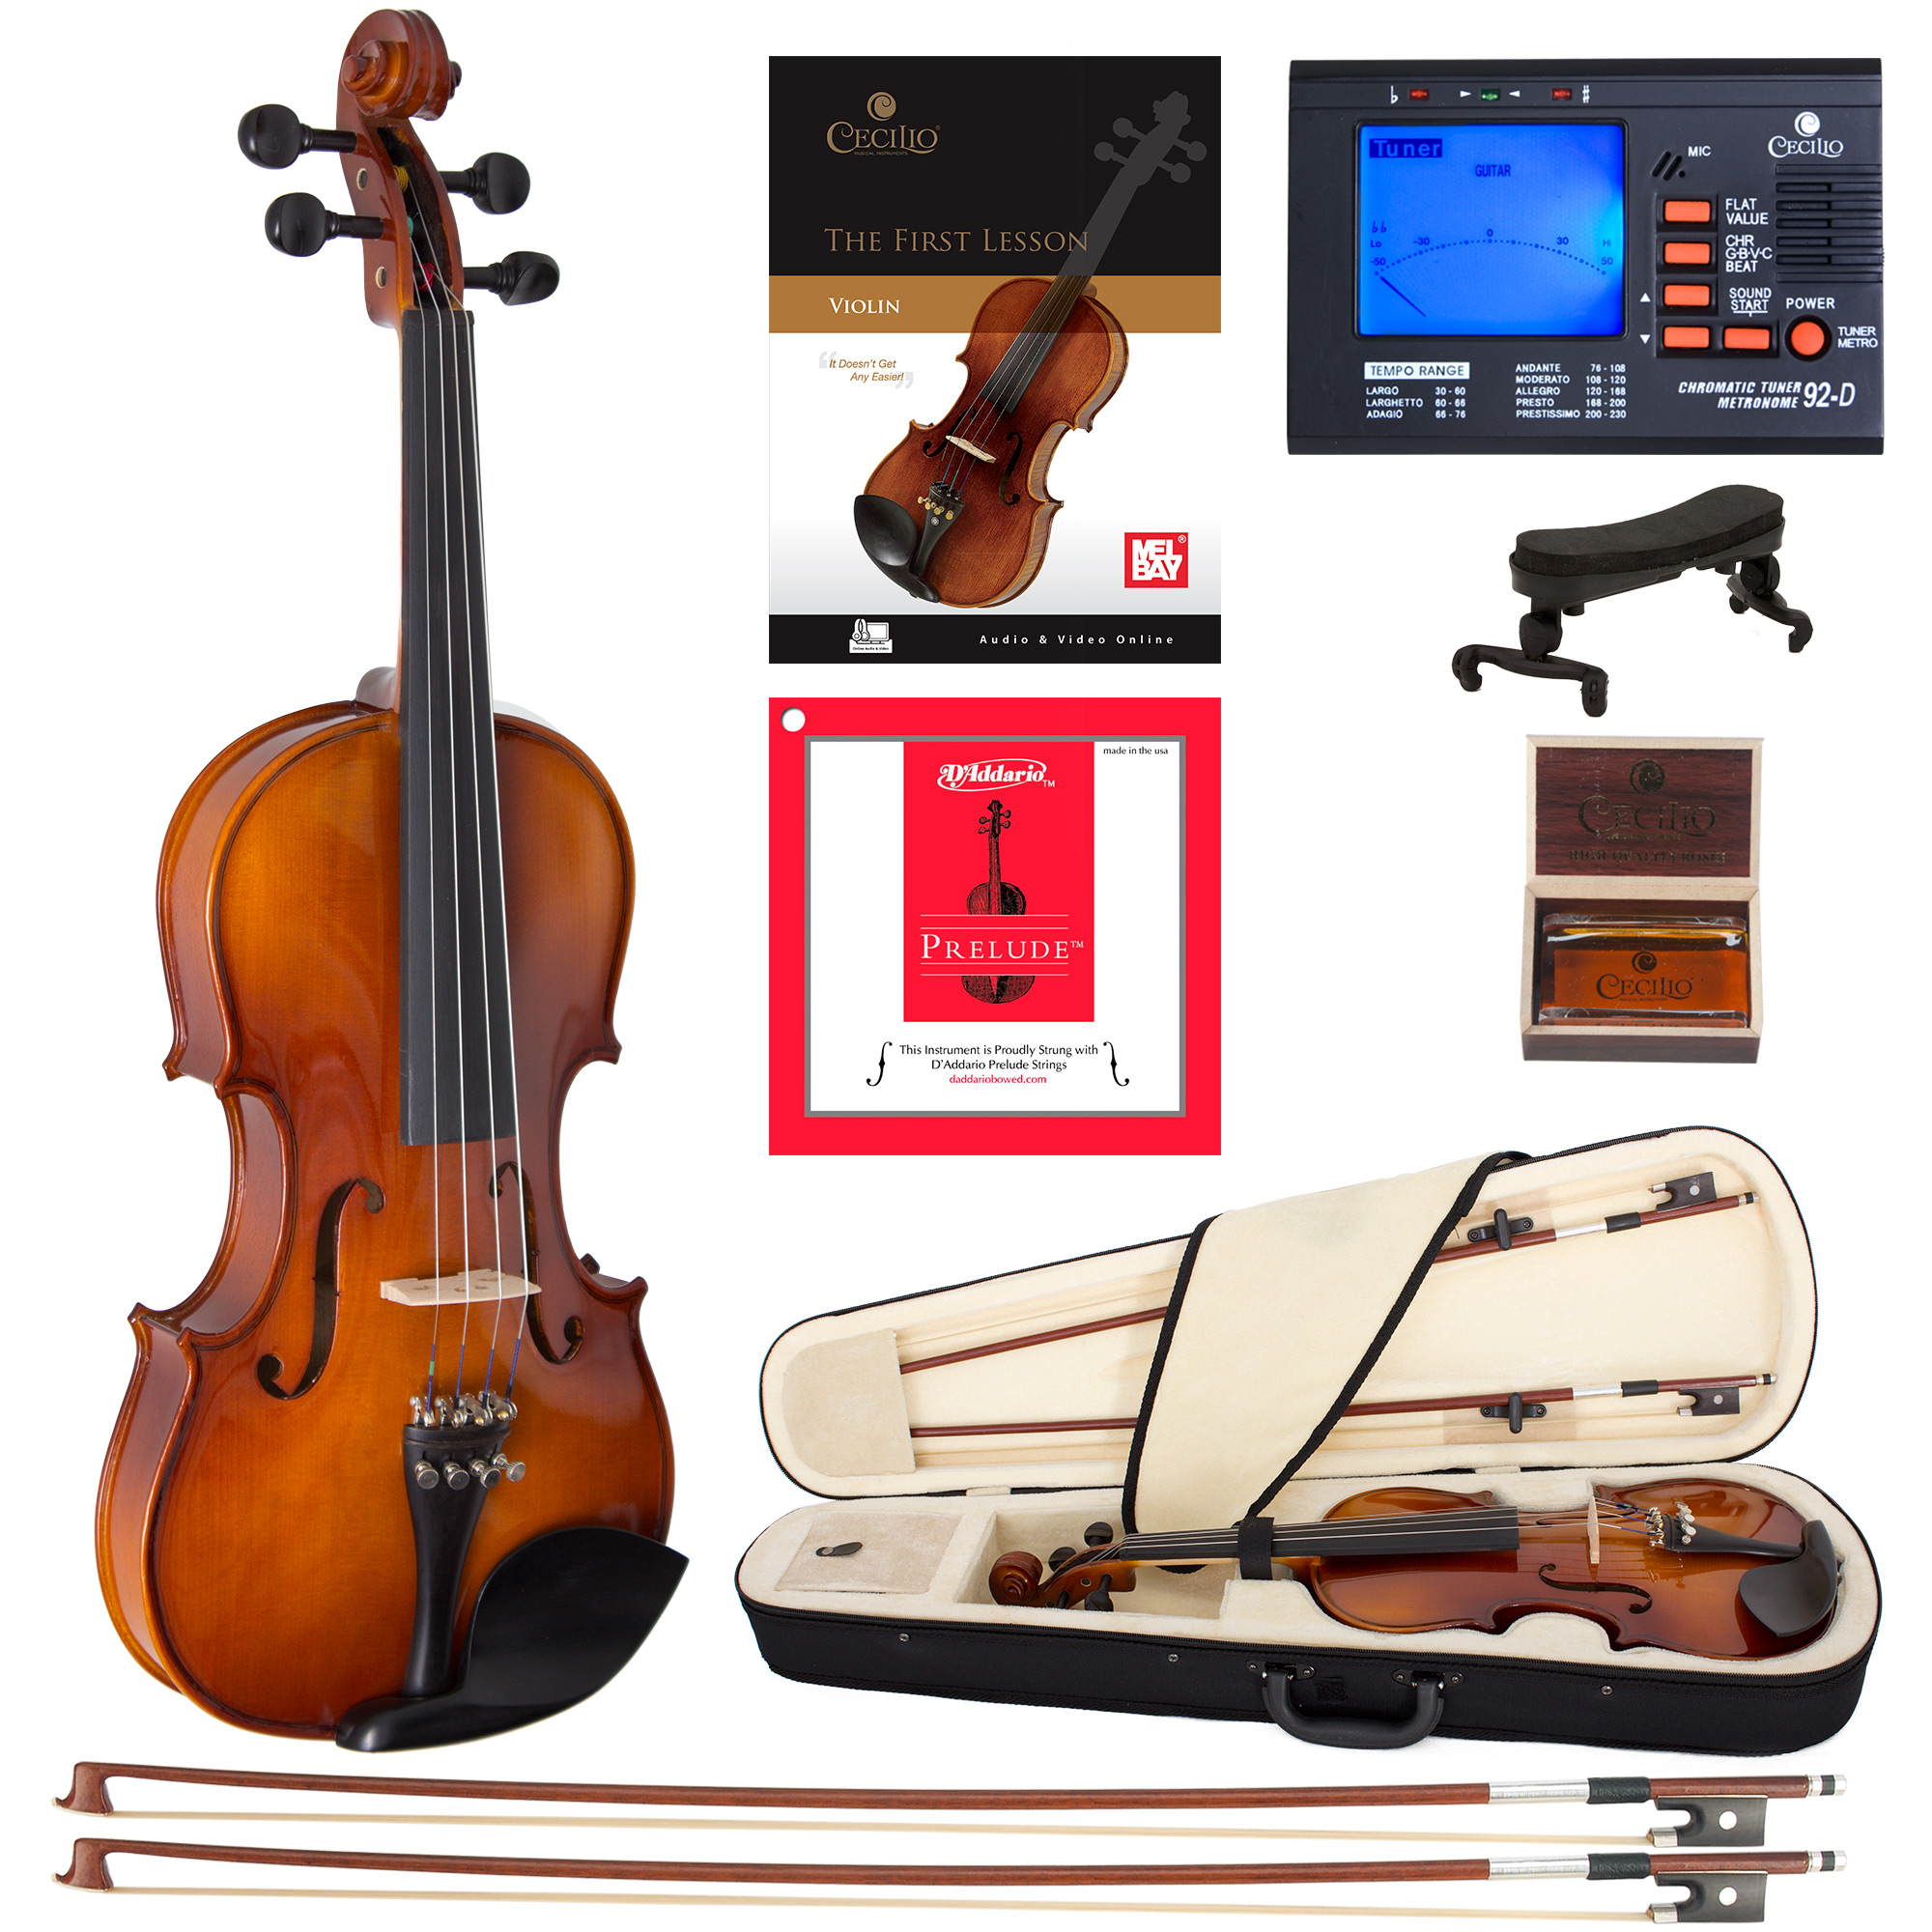 Cecilio Left-Handed Full Size 4/4 CVN-320L Ebony Fitted Solid Wood Violin w/D'Addario Prelude Strings, Lesson Book, Shoulder Rest and More